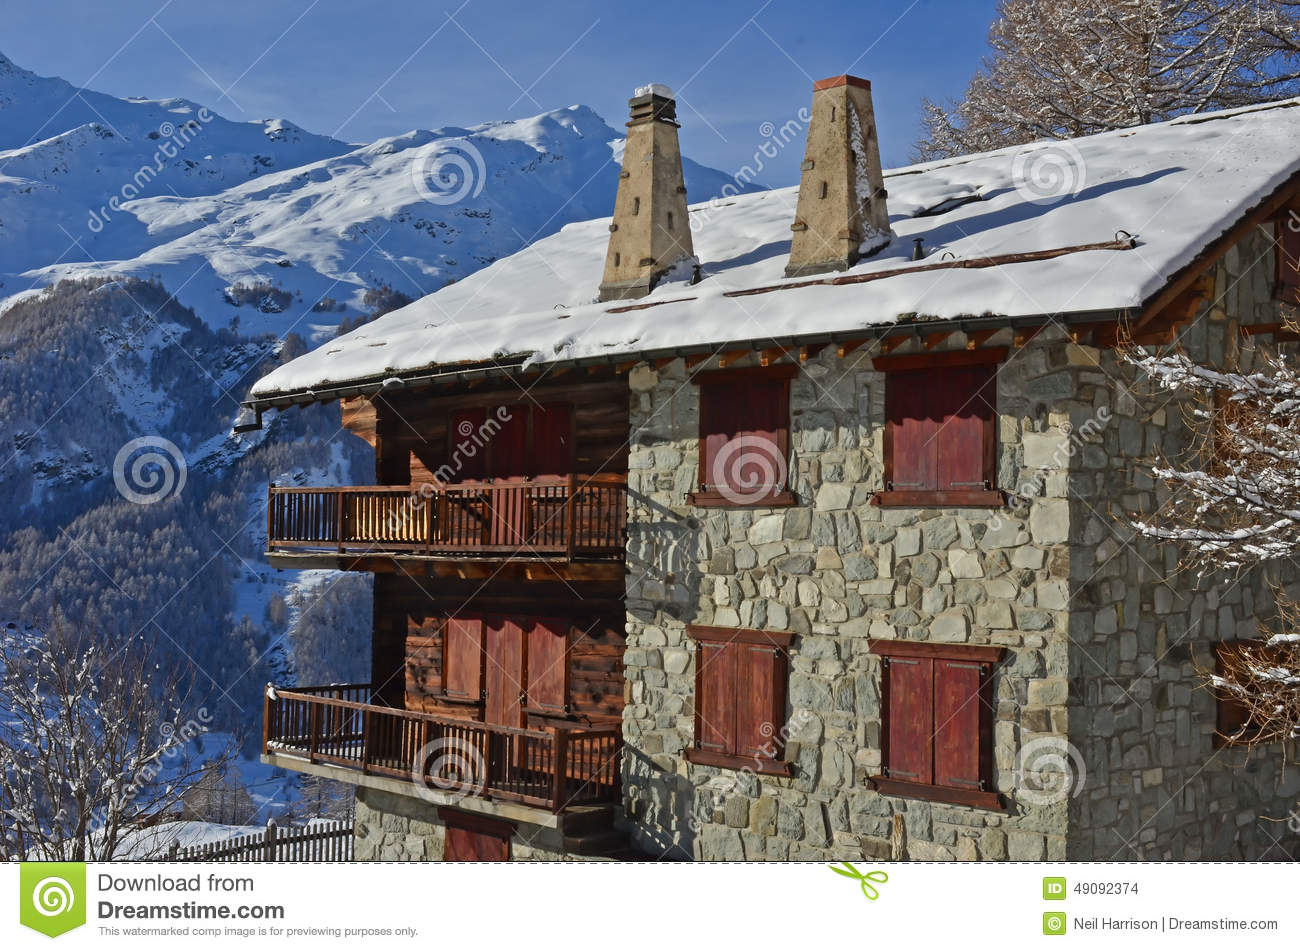 Swiss Mountain House traditional swiss mountain house stock photo - image: 49092374